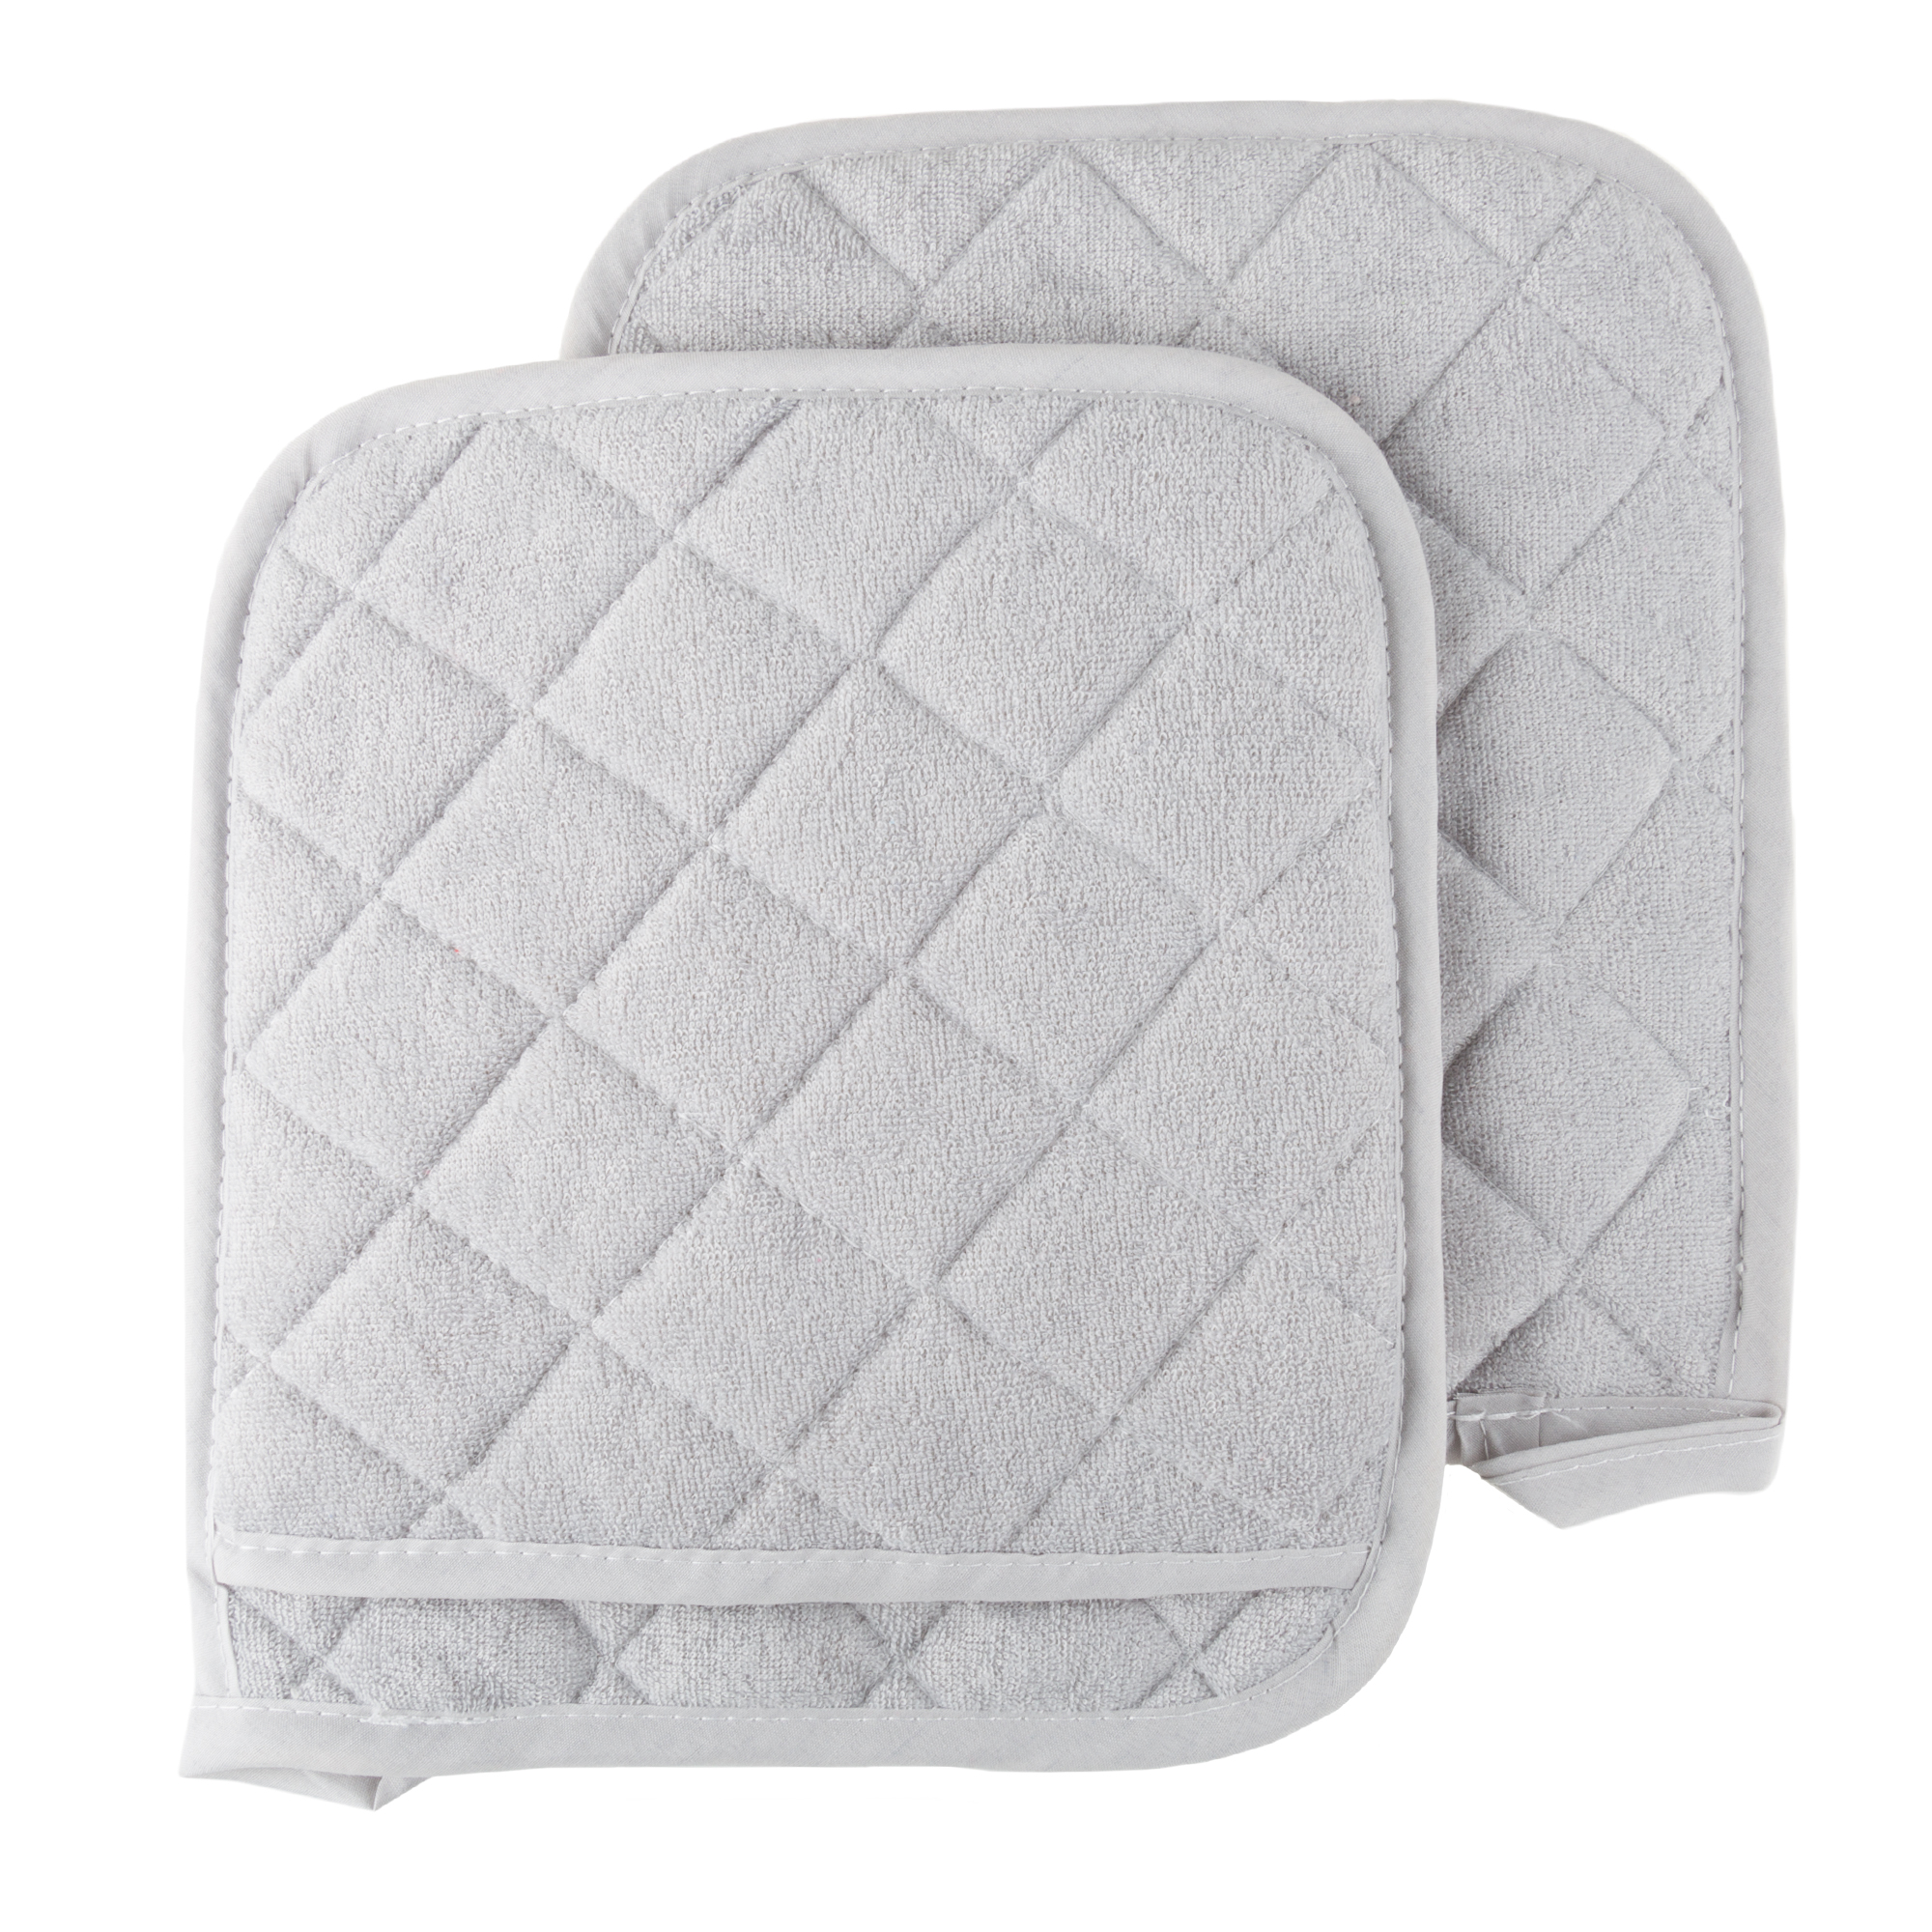 Pot Holder Set, 2 Piece Oversized Heat Resistant Quilted Cotton Pot Holders By Somerset Home